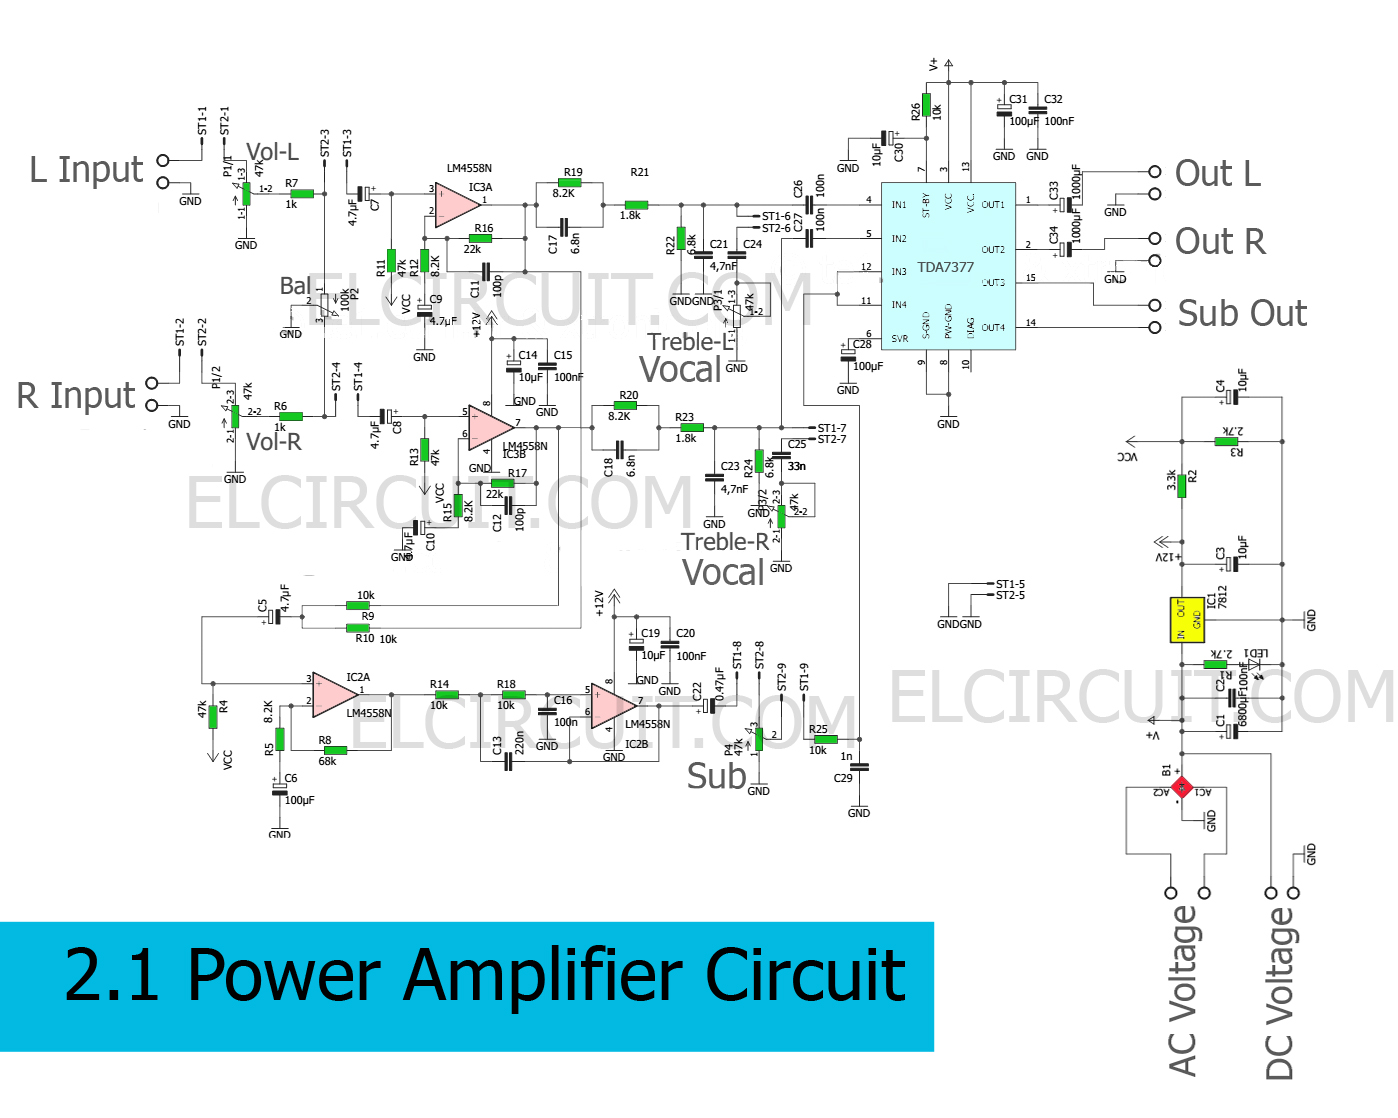 21 Power Amplifier Using Tda7377 Electronic Circuit Lm380 Audio Get Electronics Schematic Of